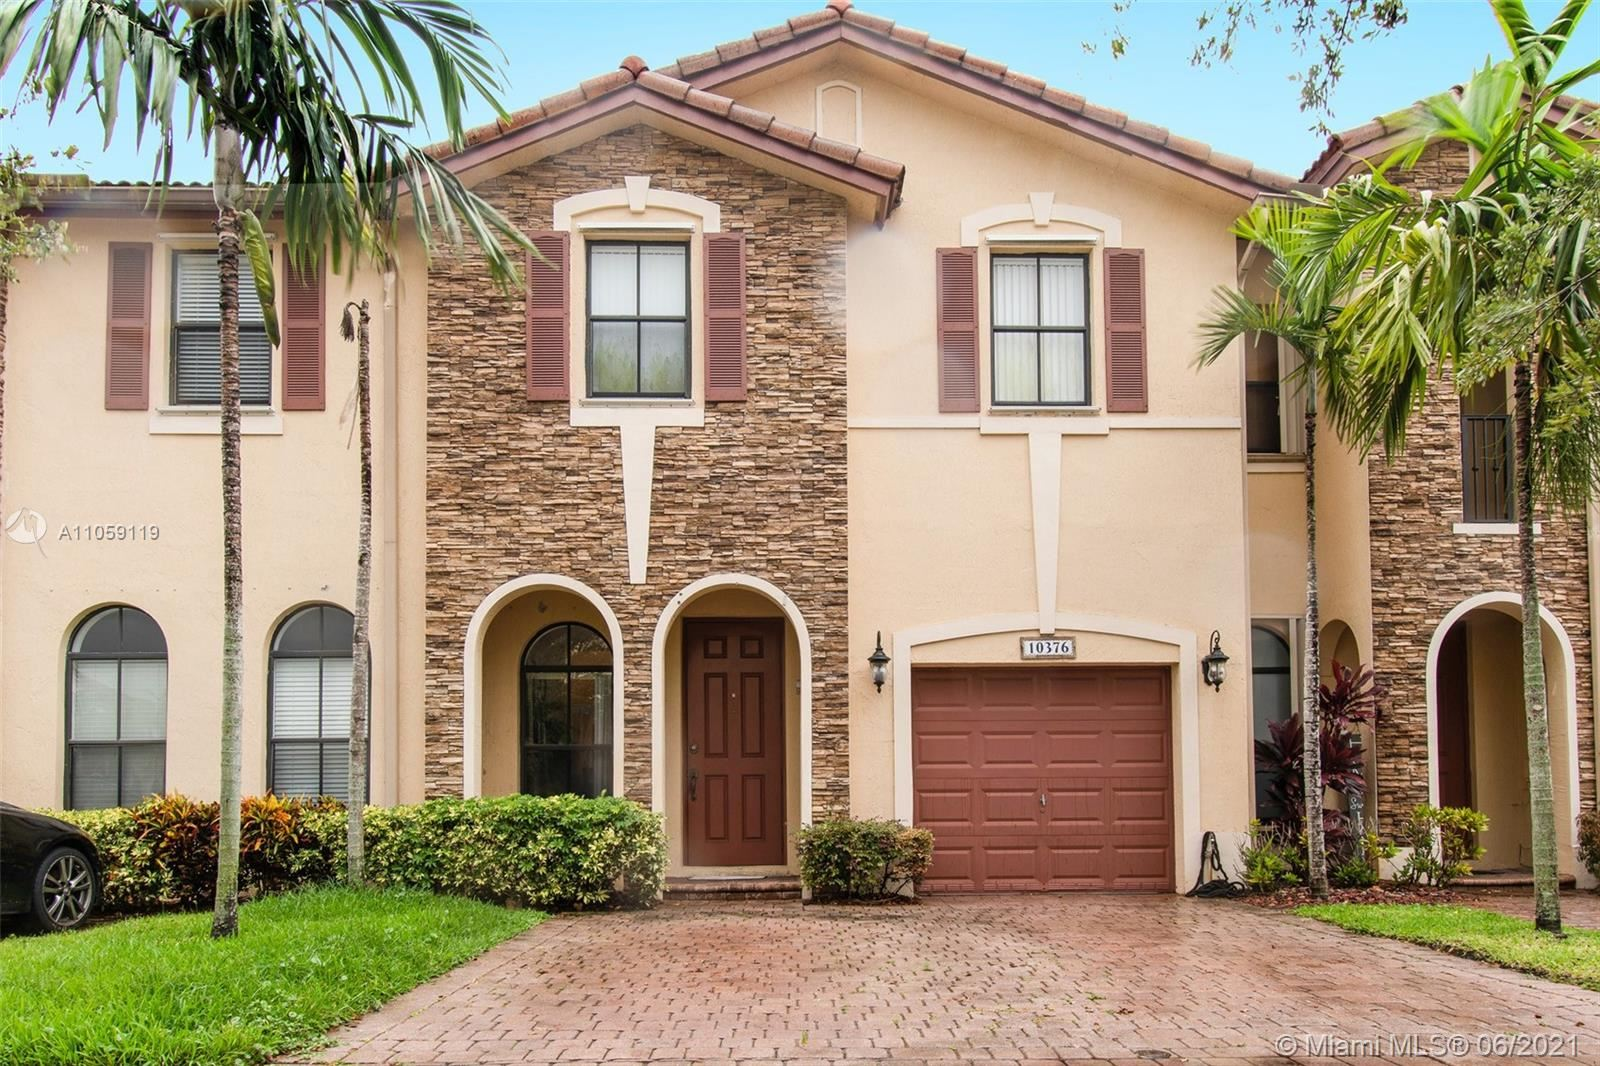 10376 NW 31st Ter, Doral, FL 33172 - #: A11059119